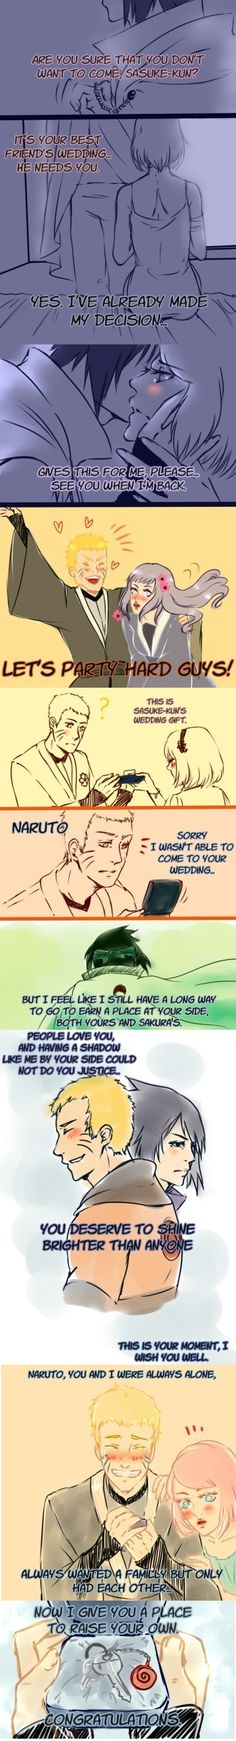 Naruto - Why Sasuke was not at Narutos wedding